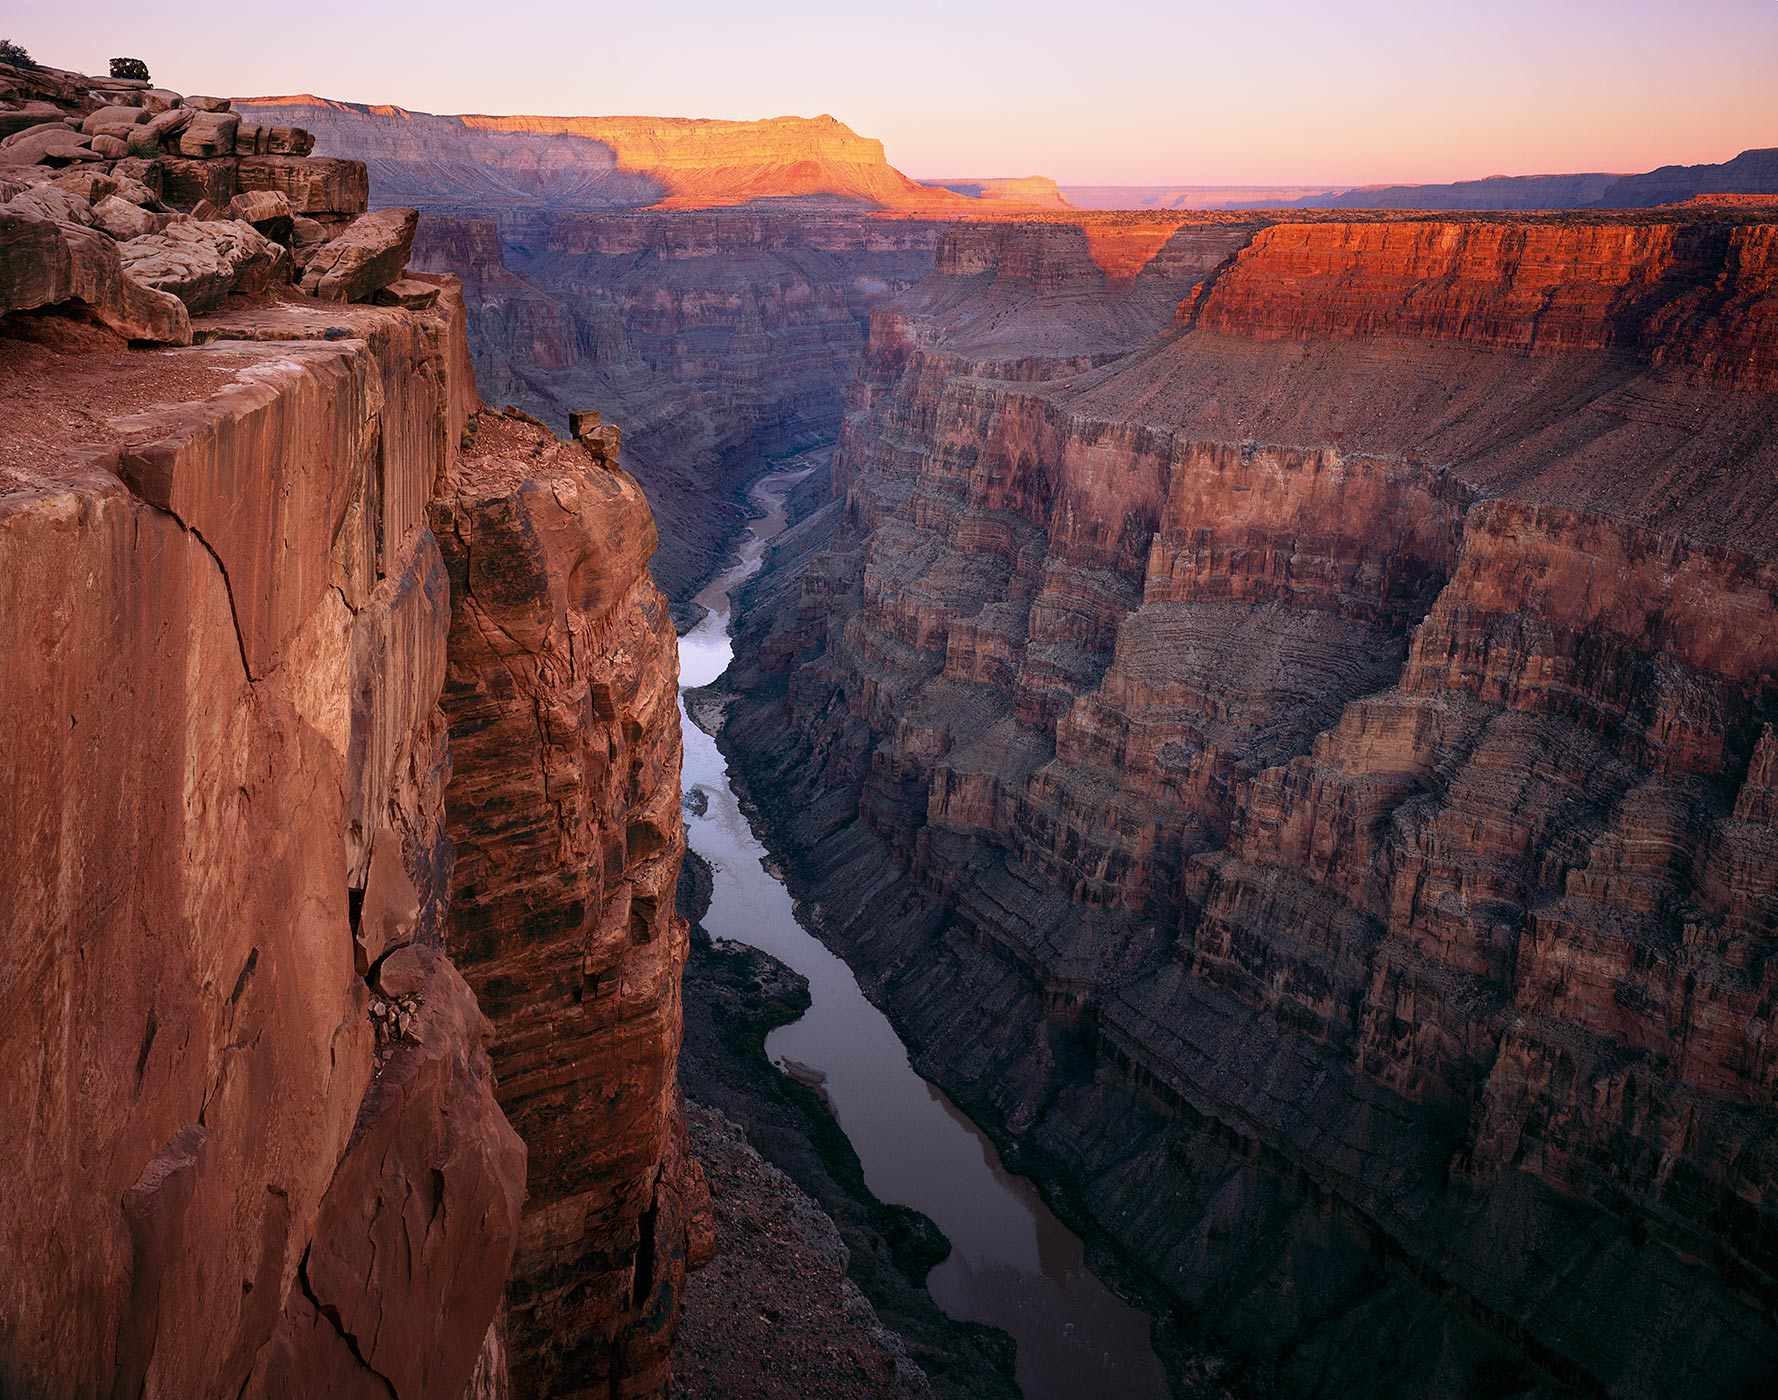 607 Cliffs above the Colorado, Grand Canyon National Park, Arizona